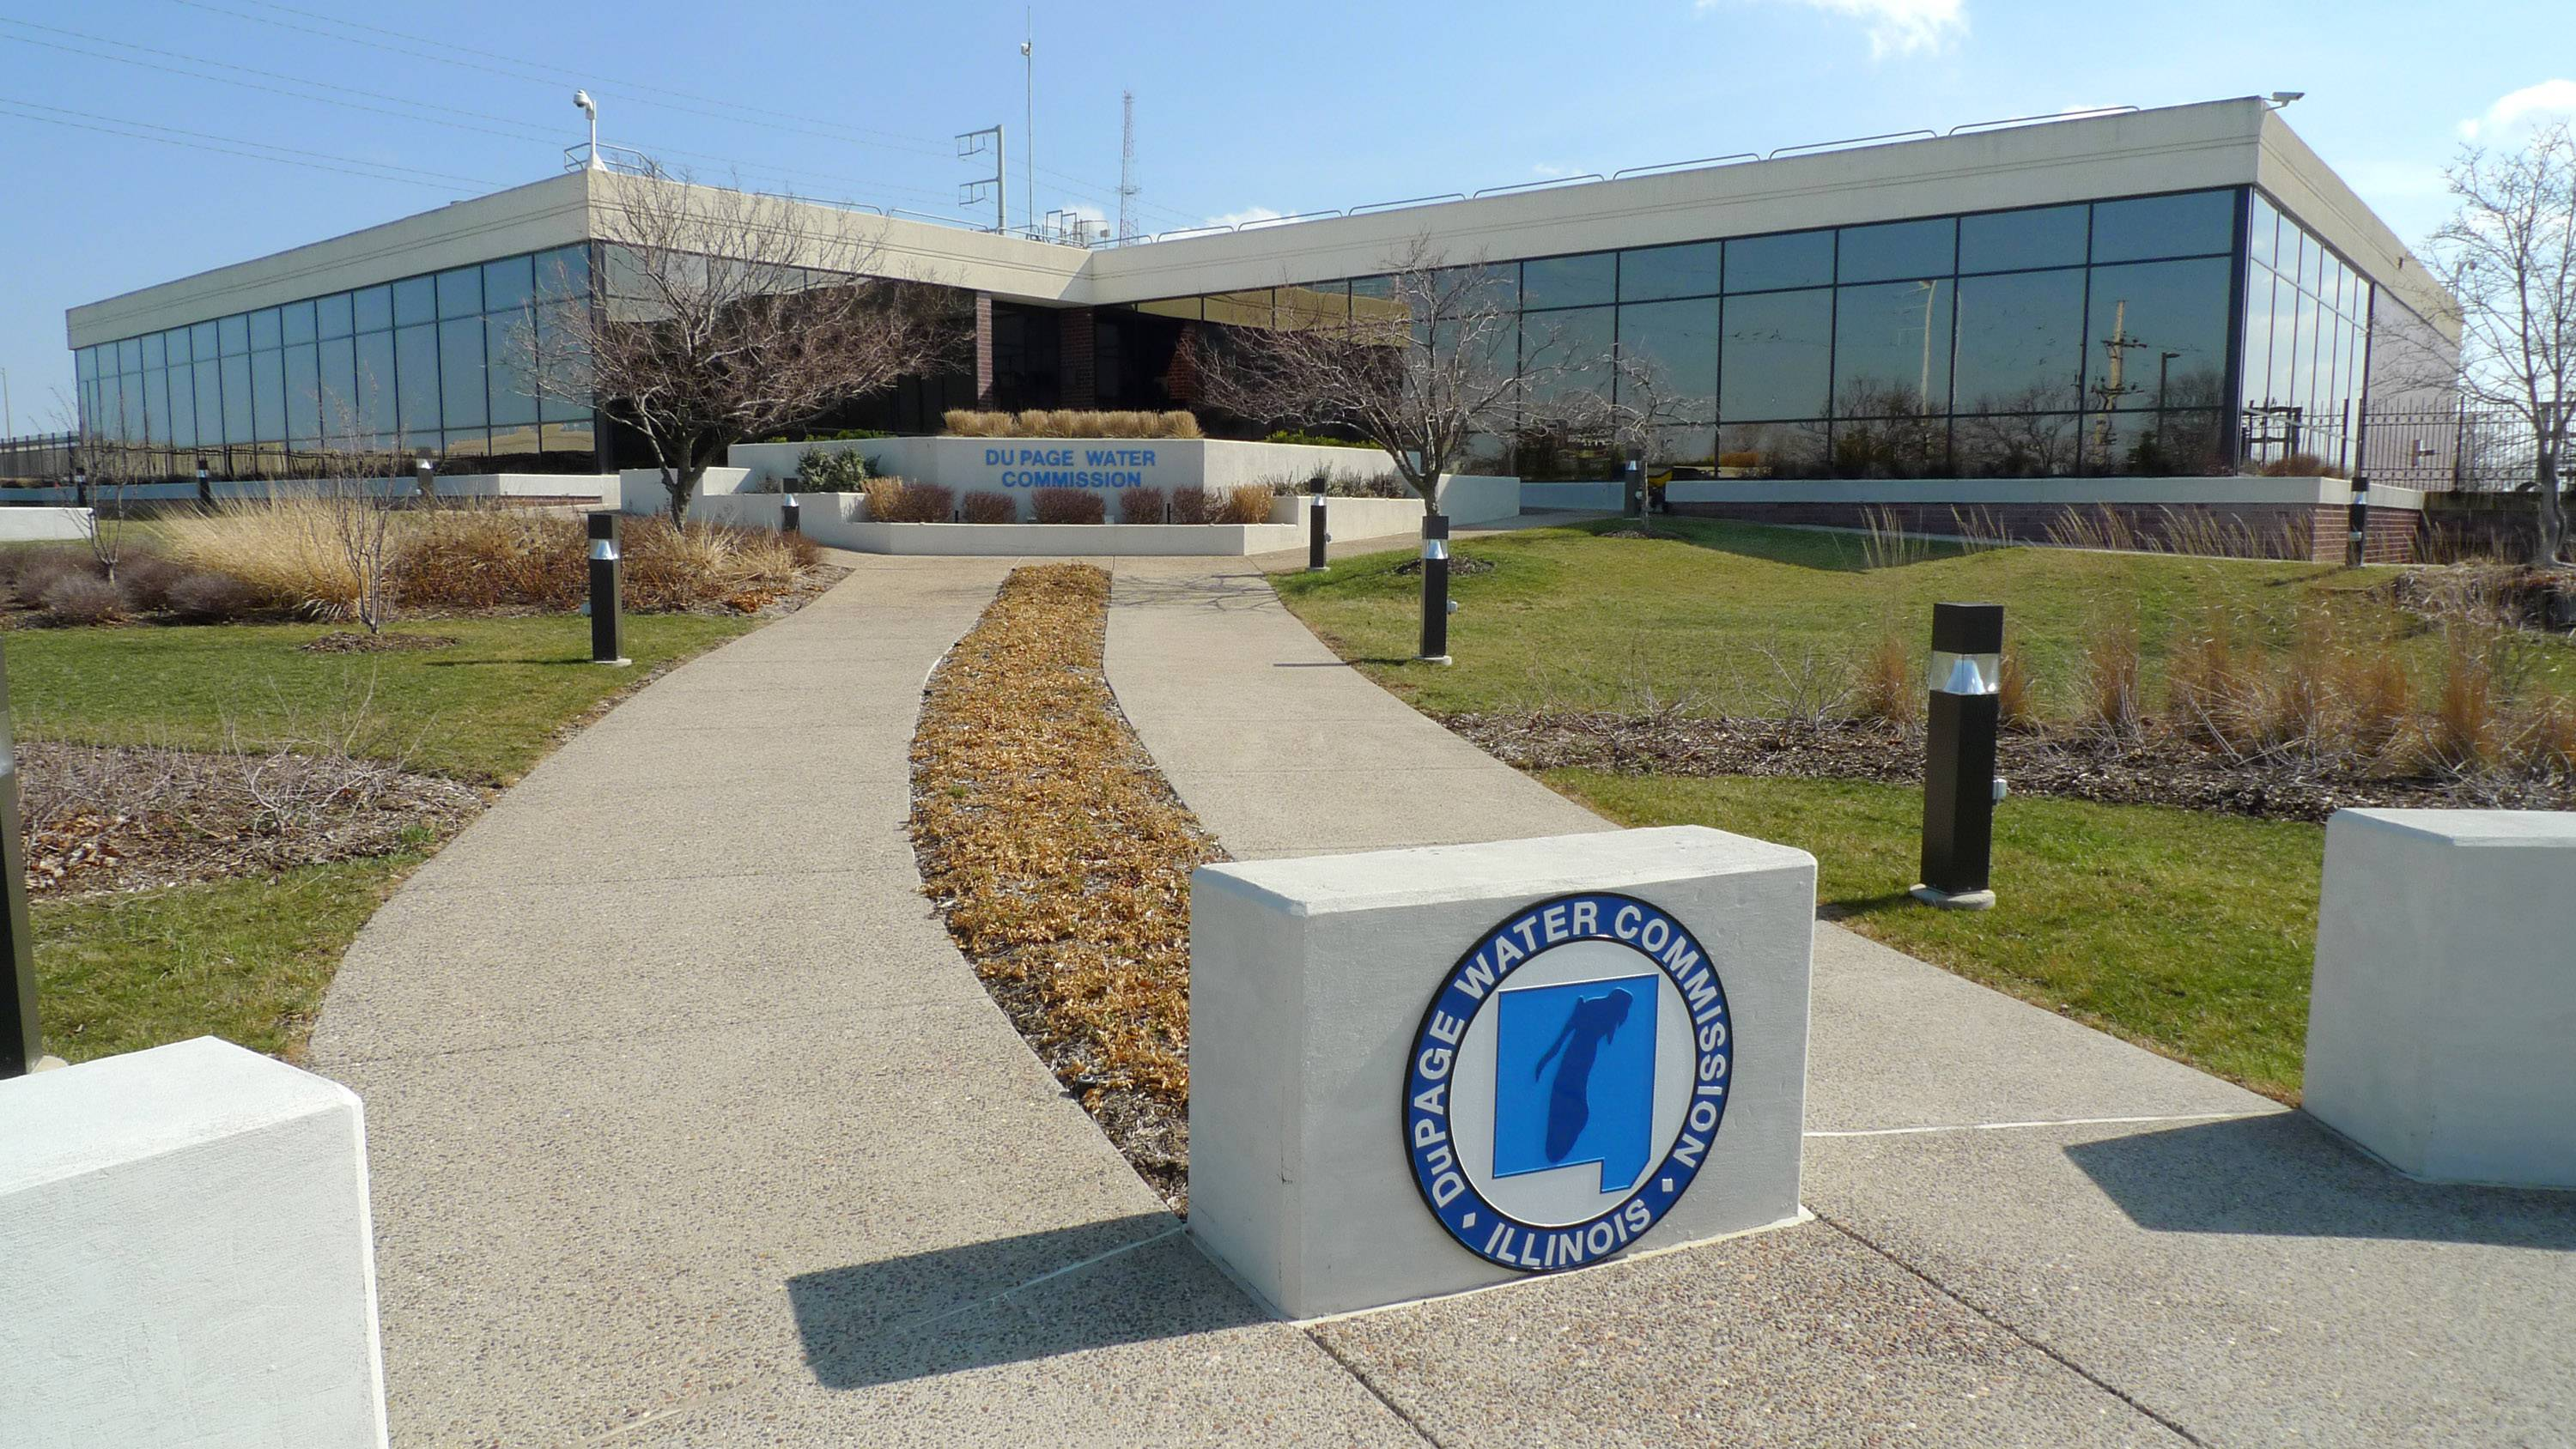 The DuPage Water Commission has agreed to lower the price it charges towns for Lake Michigan water. The reduced rate is scheduled to take effect May 1.